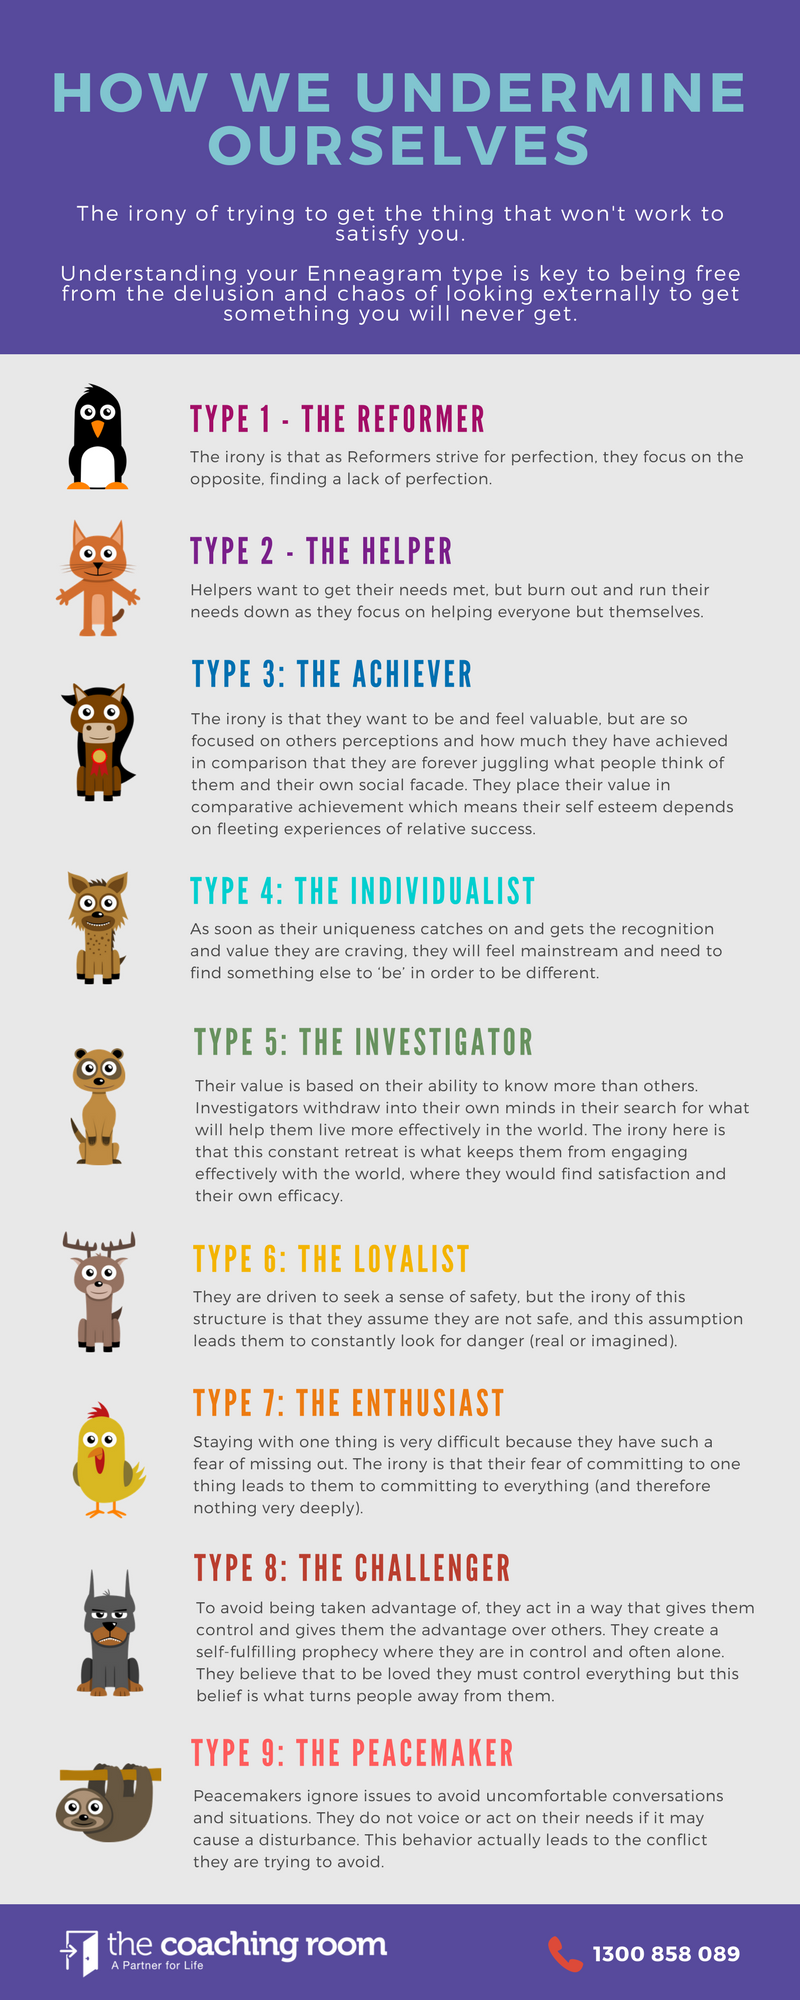 How we undermine ourselves - Enneagram.png